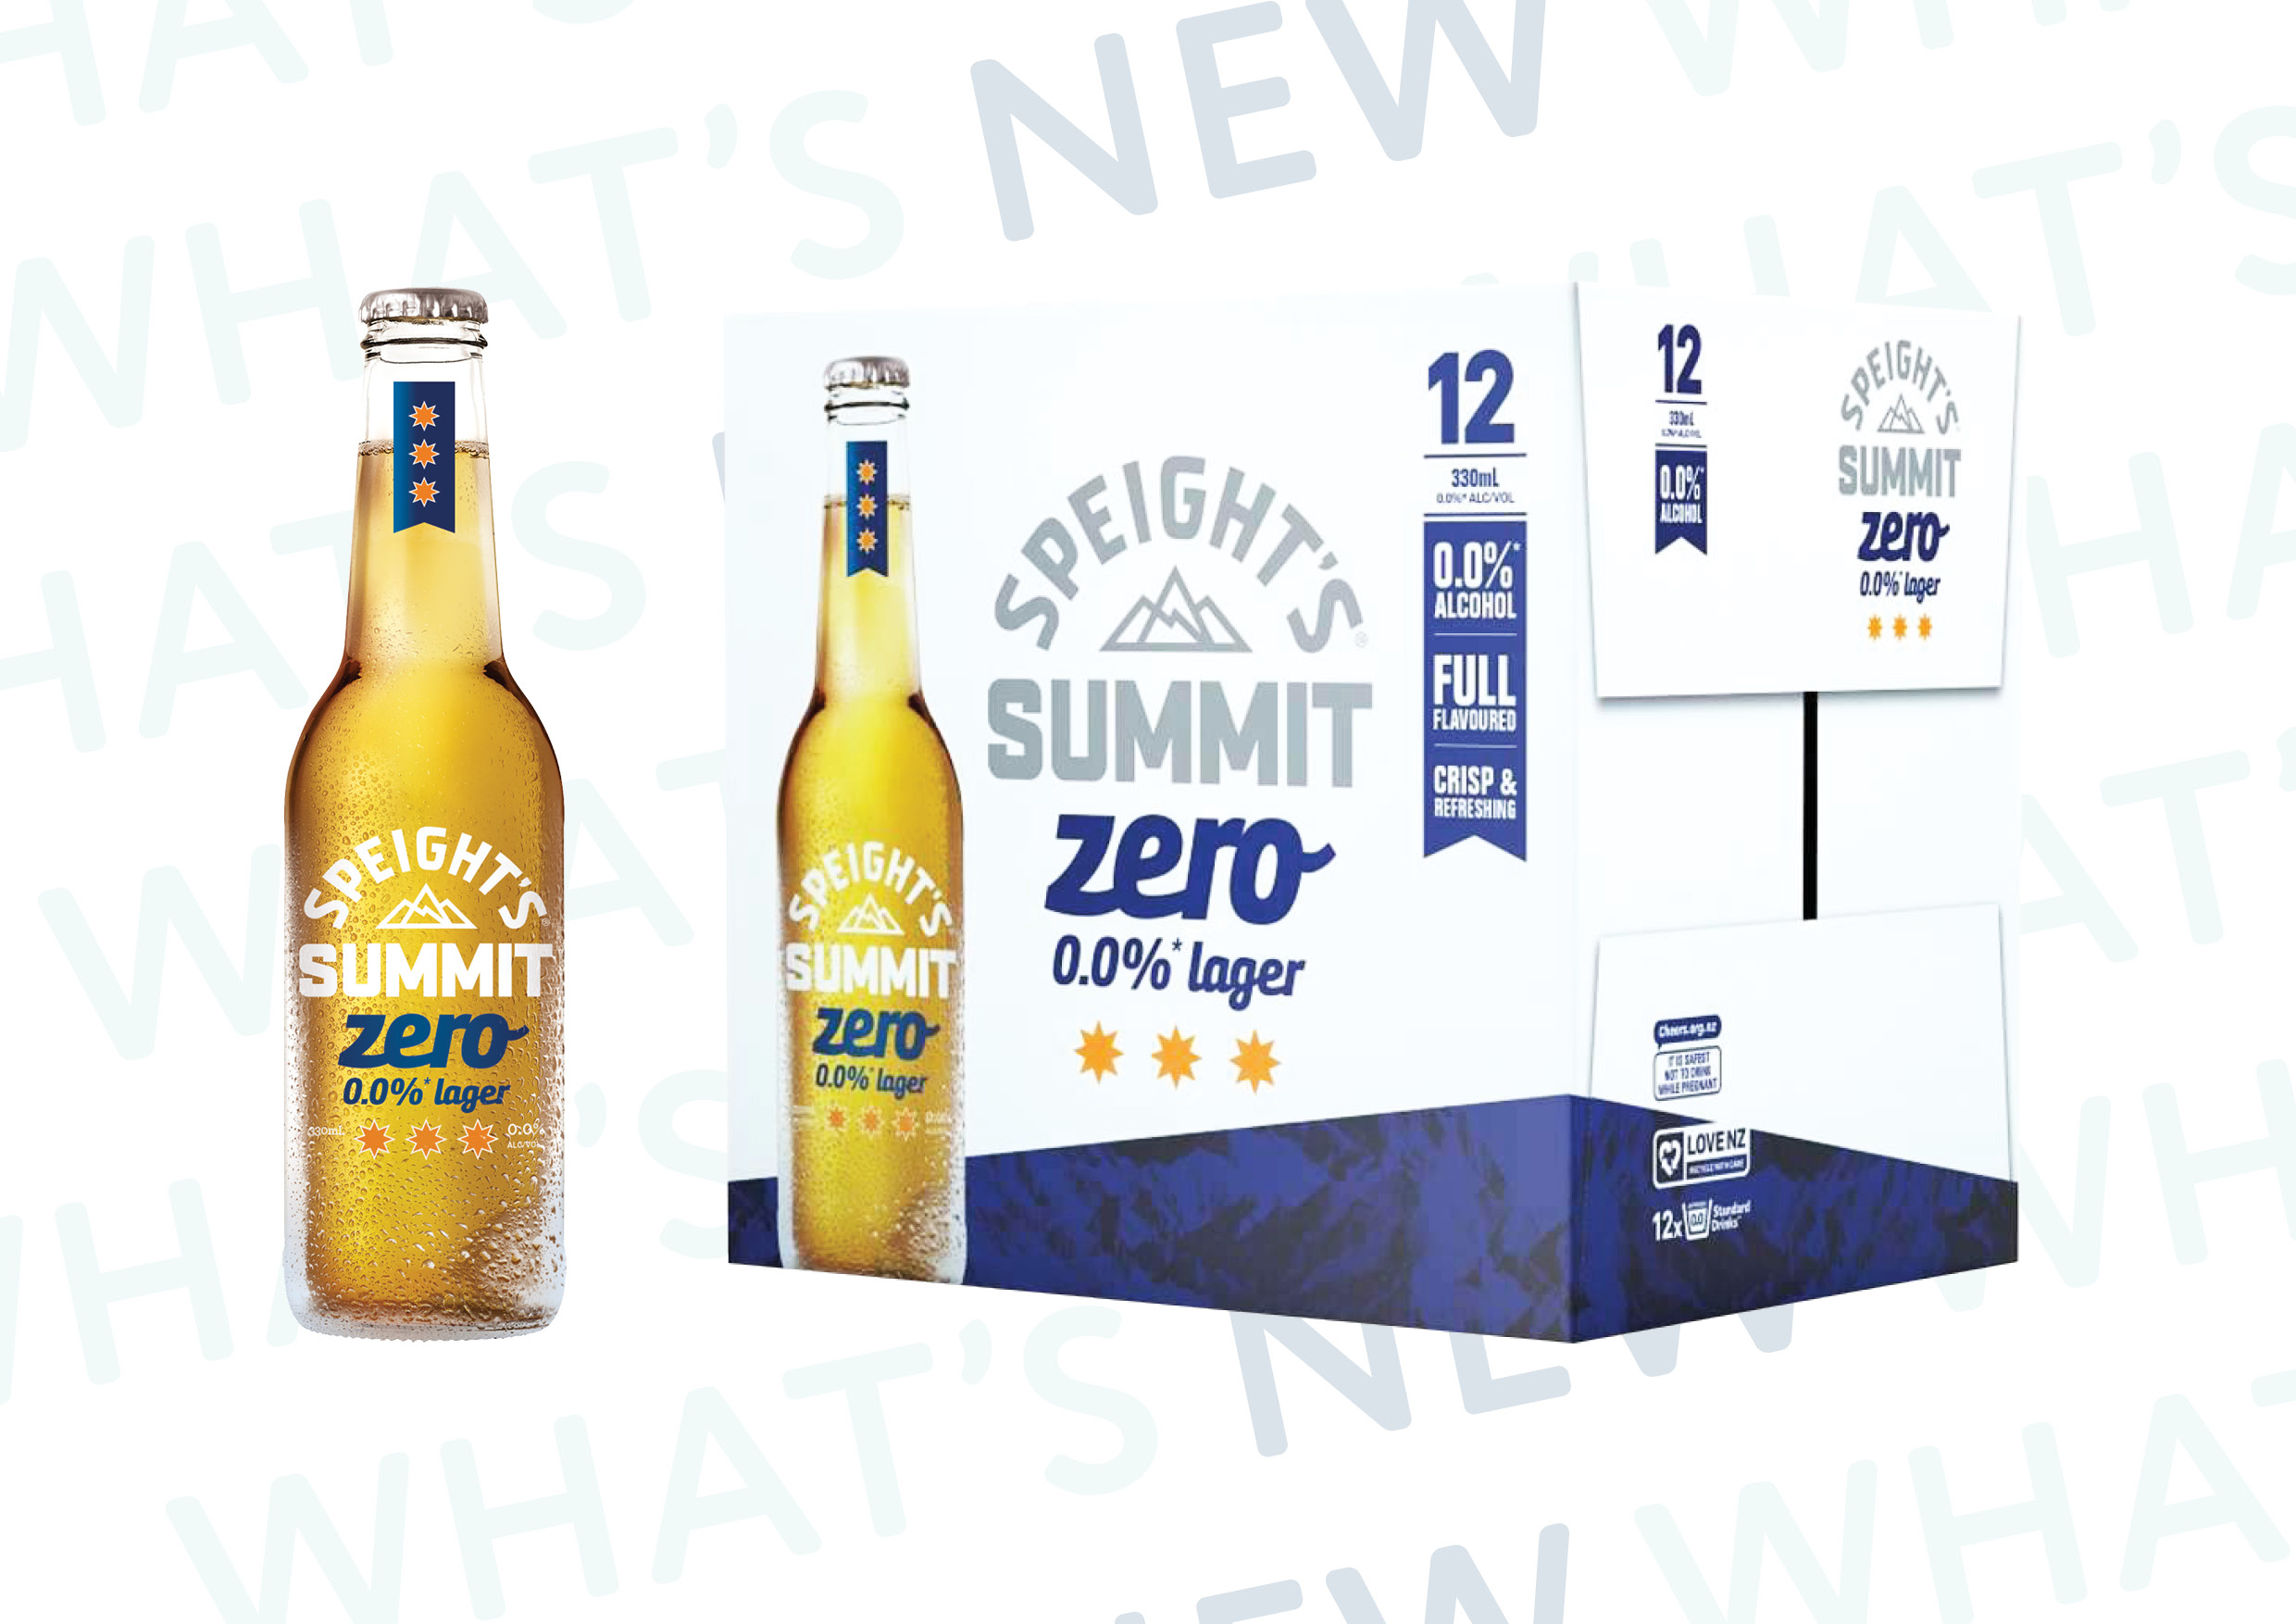 Speight's Releases Speight's Summit 0.0% Lager